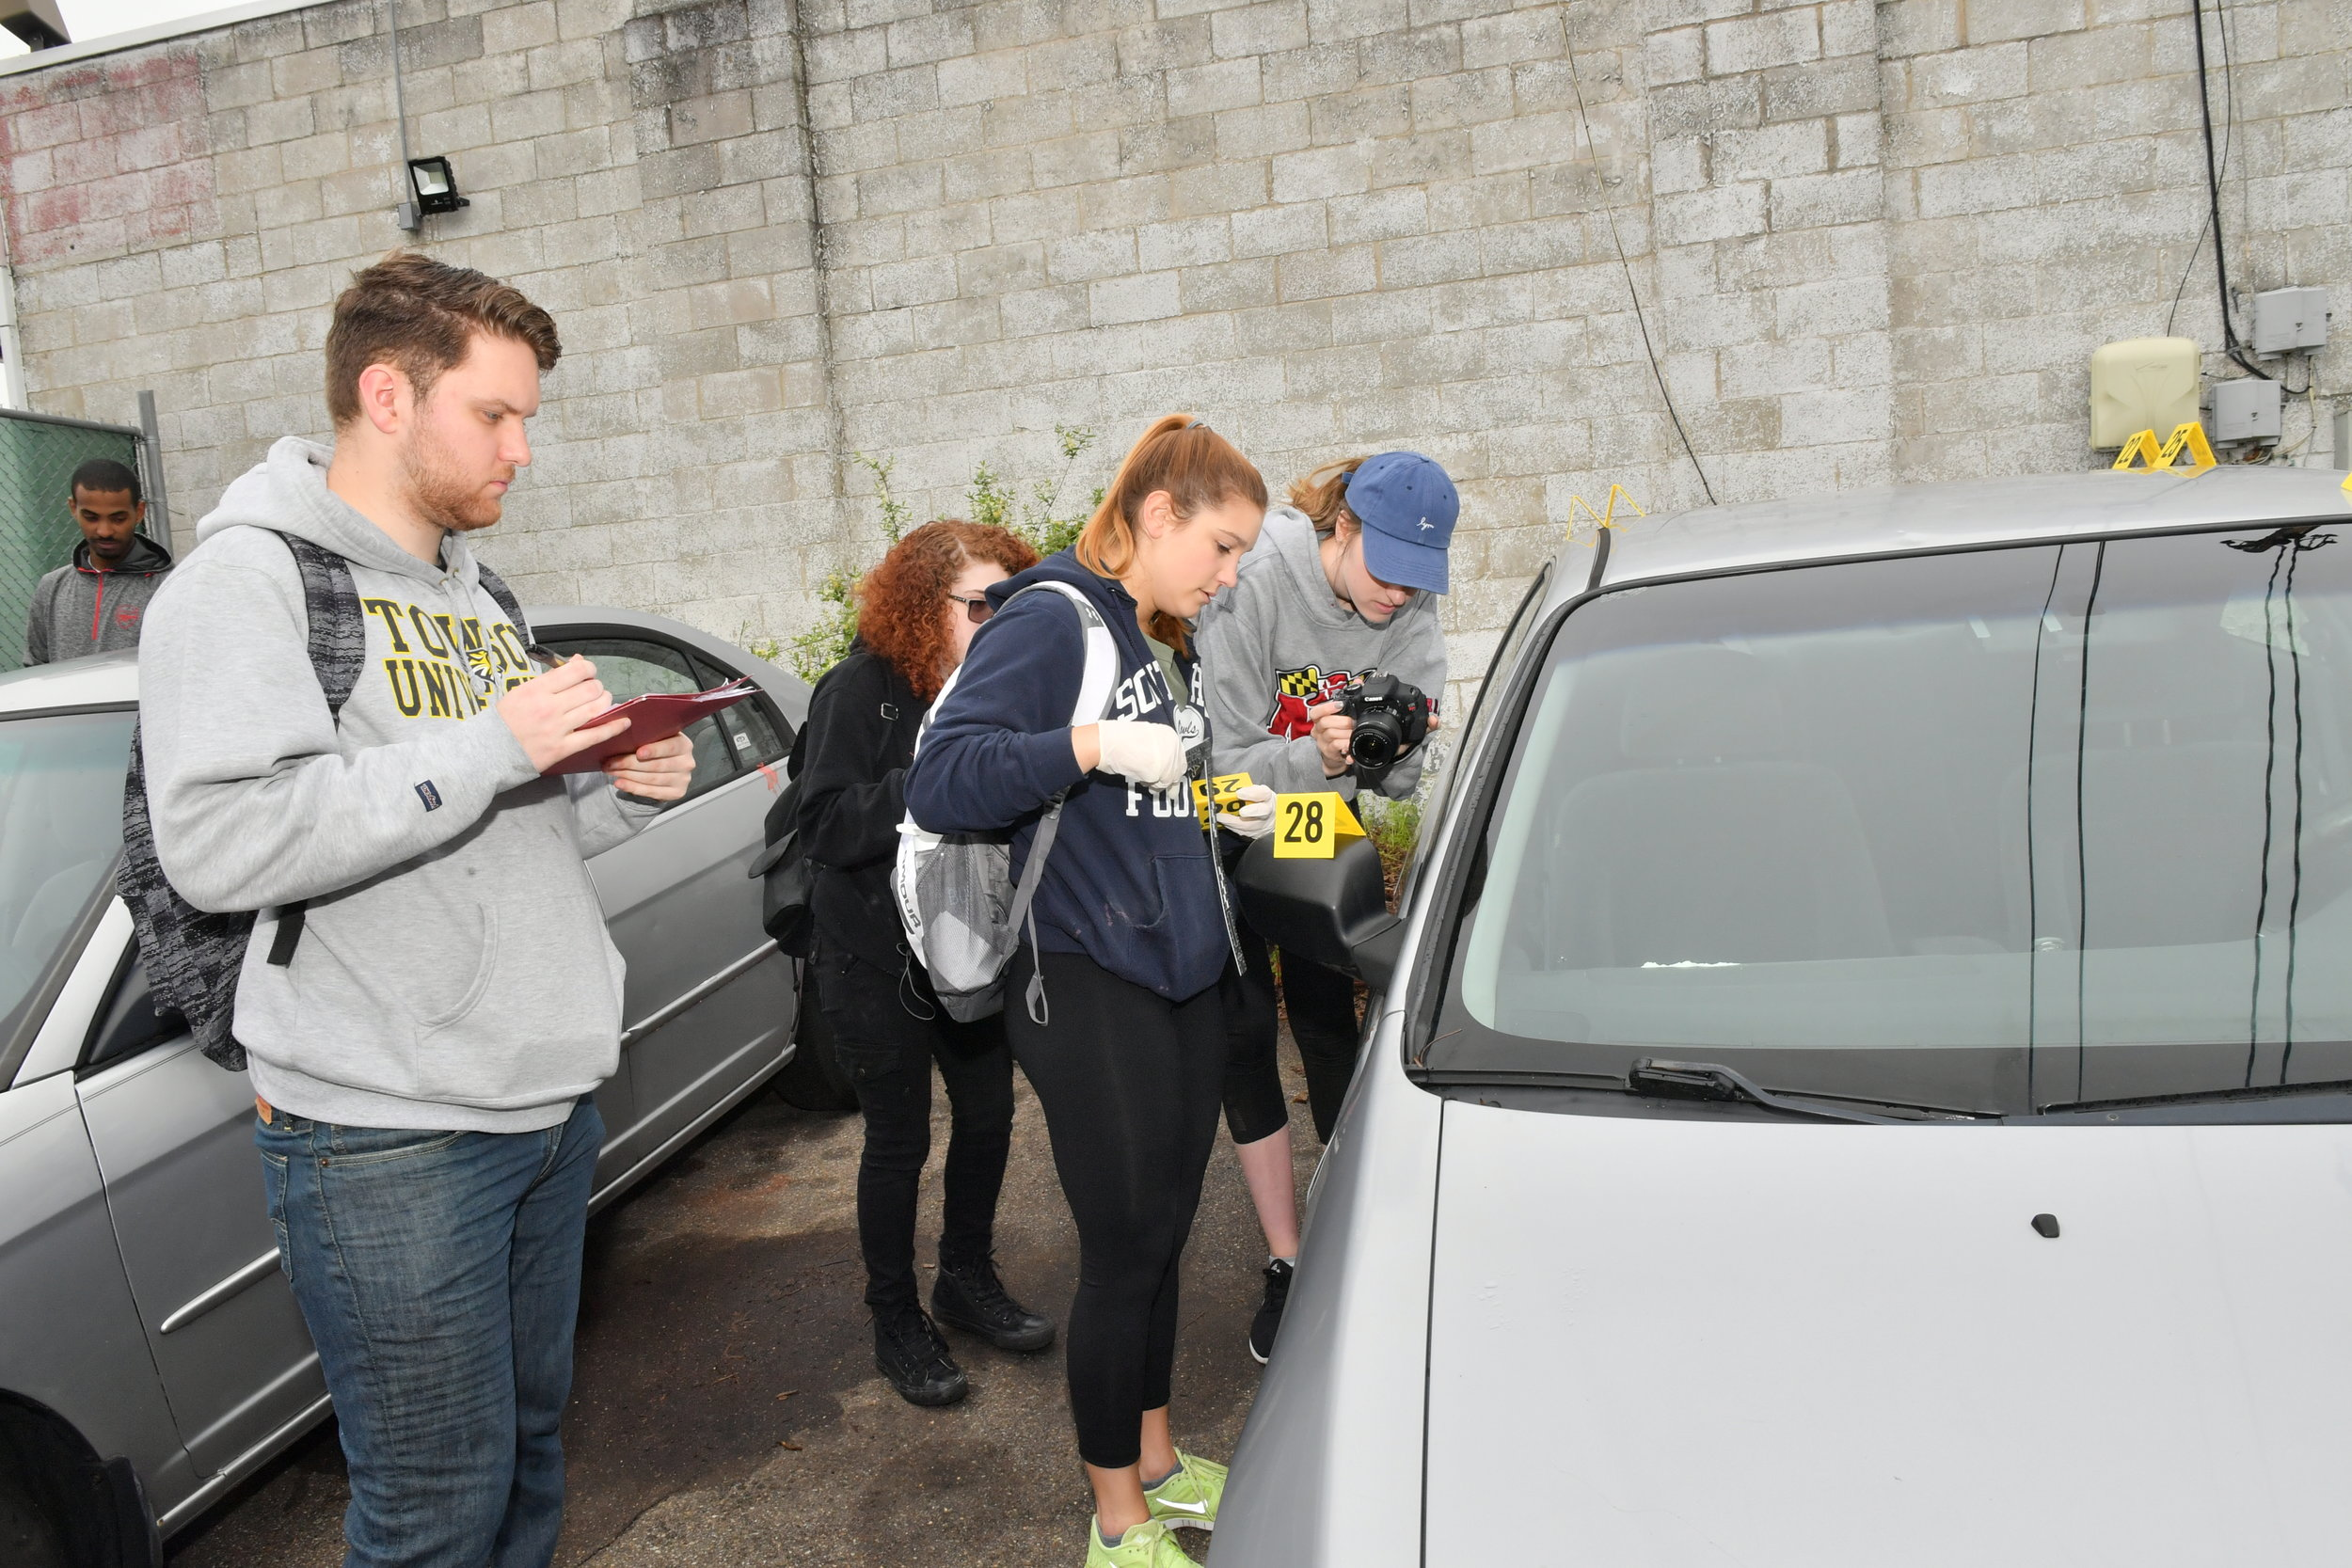 TU Crime Students Mock Crime Scene International Auto Repair Baltimore MD 21207 21244.JPG